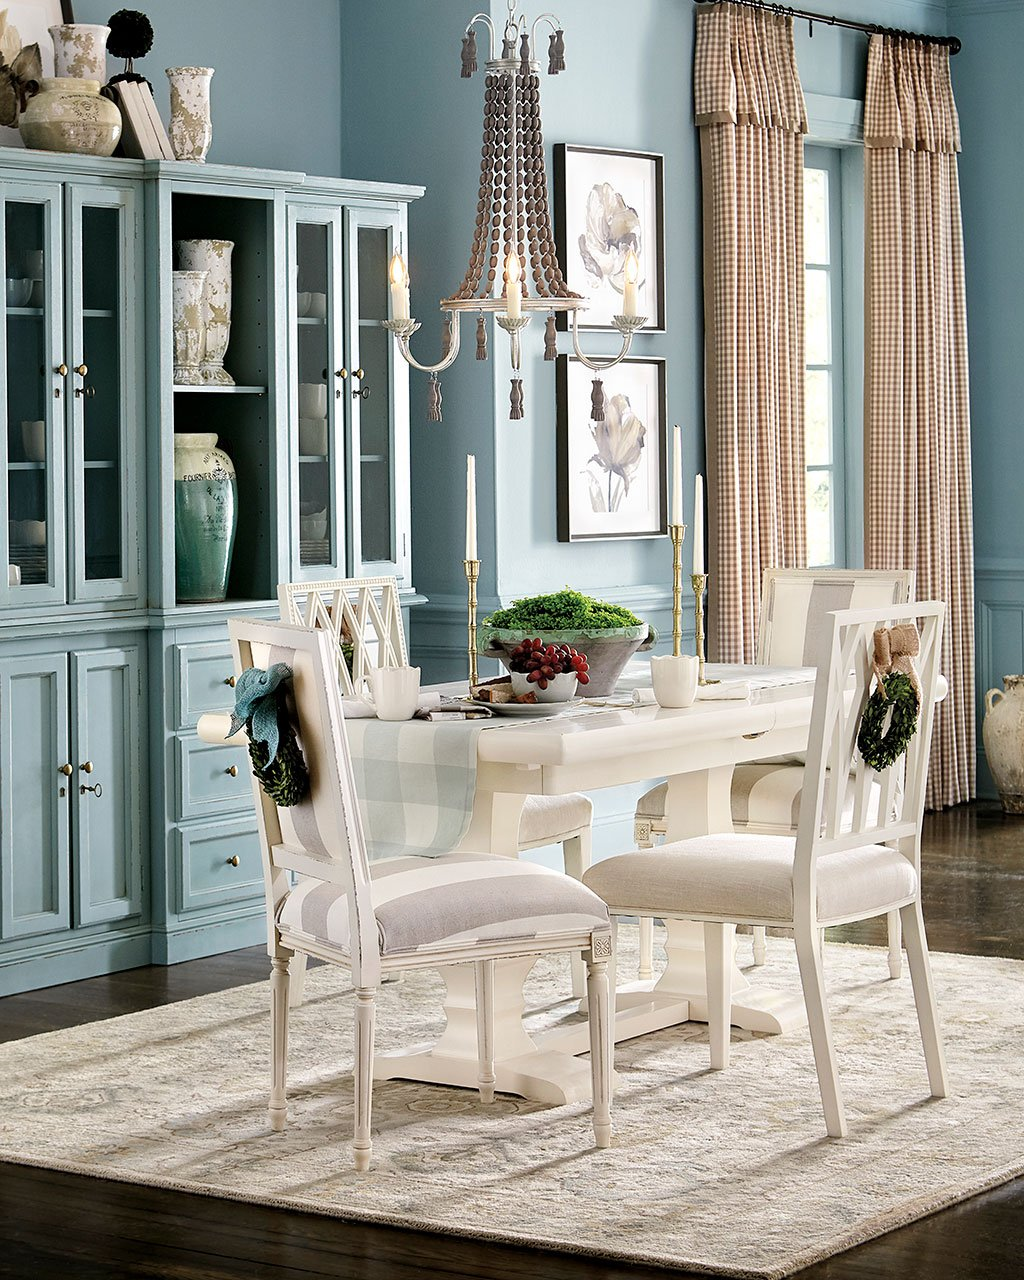 lighting errors, at what distance hang the chandelier above the dining table